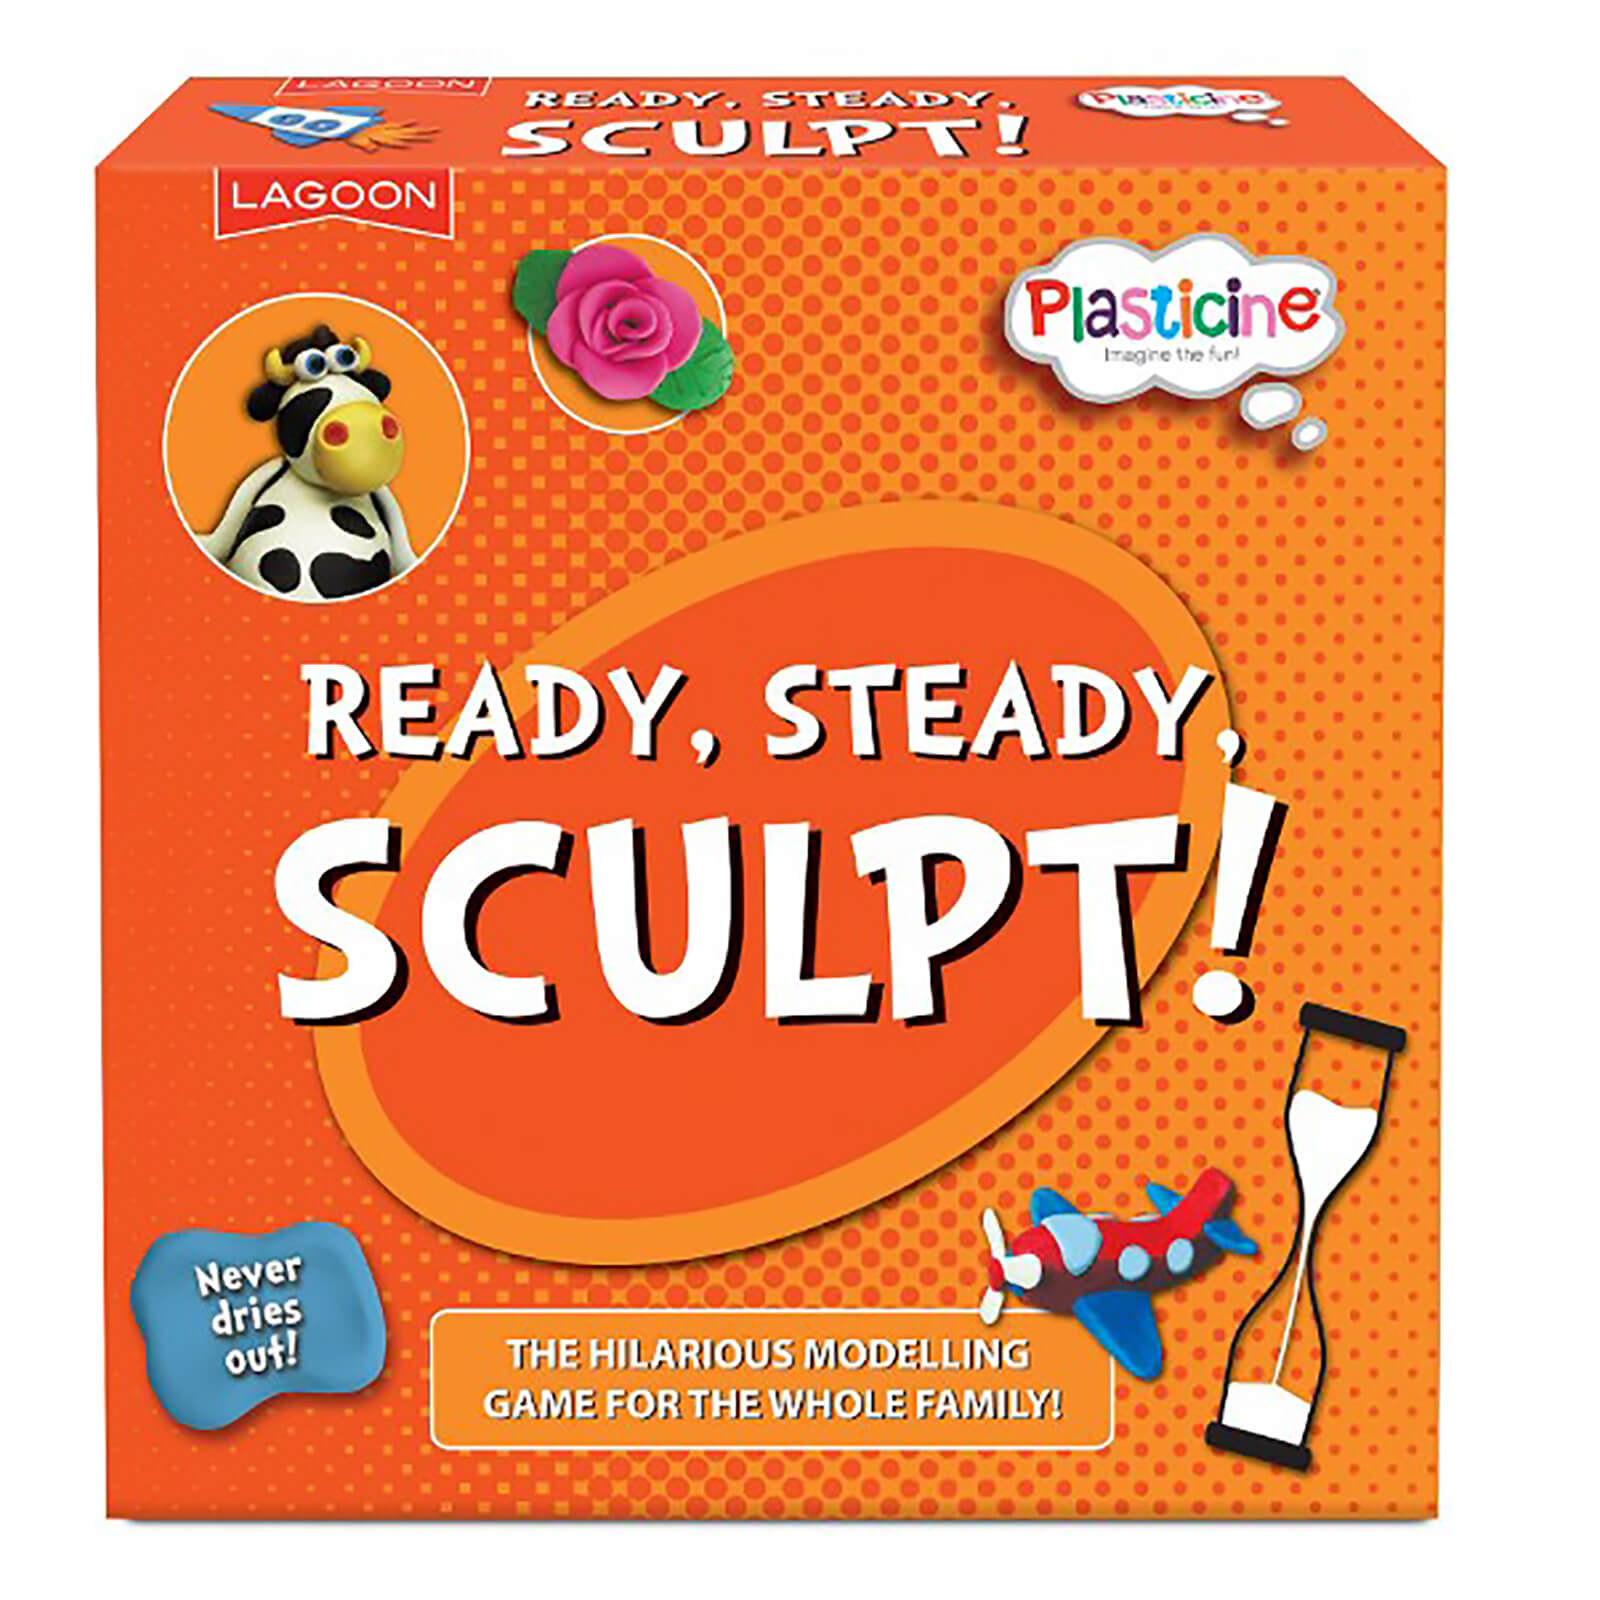 Image of Ready, Steady, Sculpt! Game